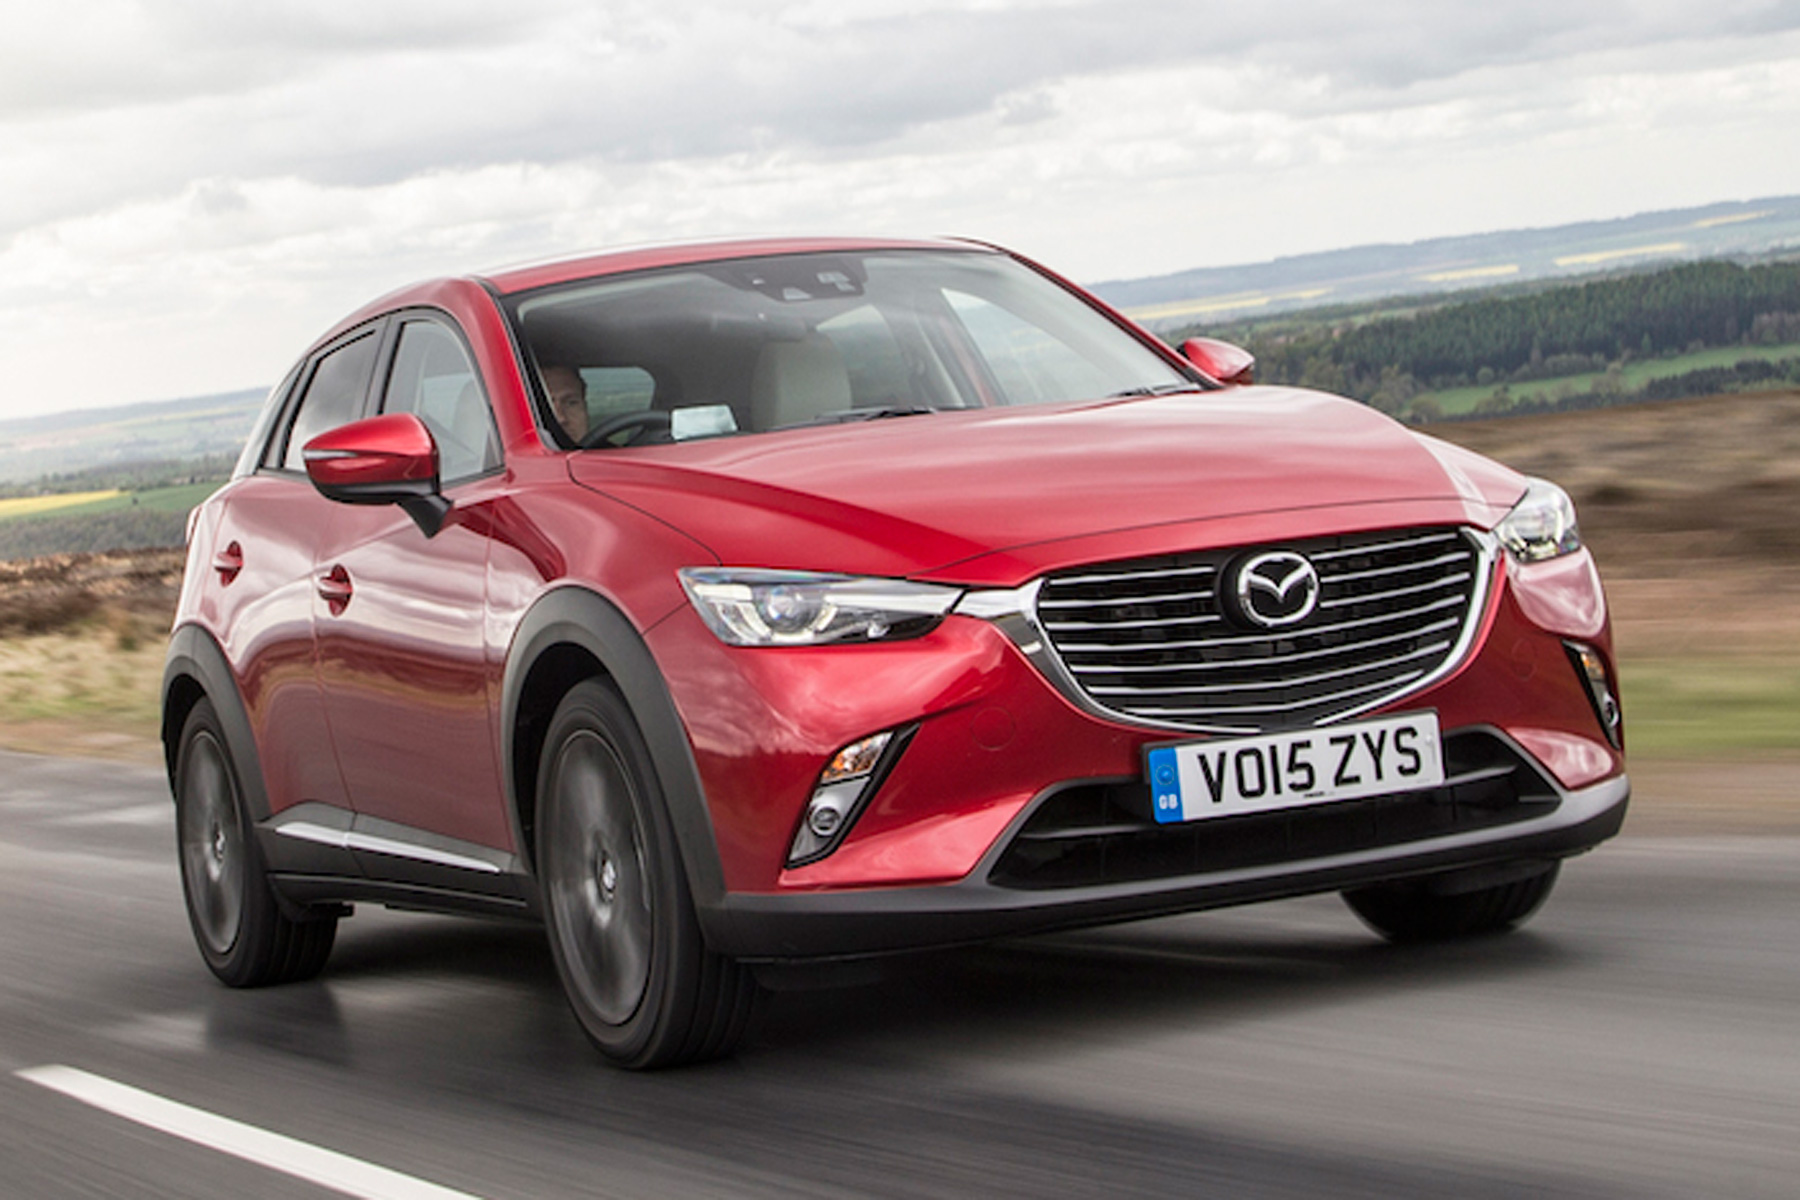 Mazda CX-3: On the road